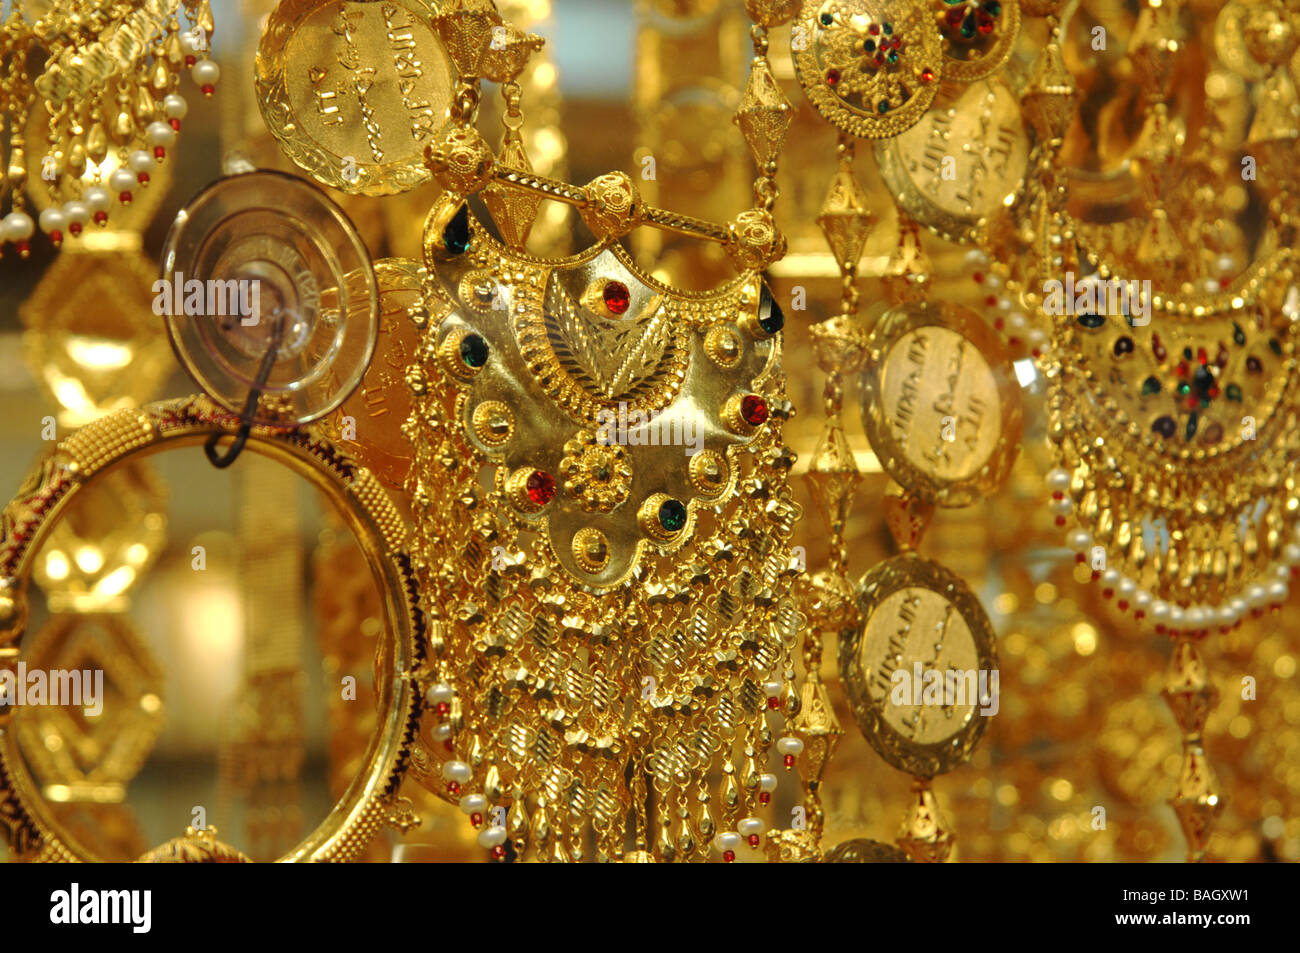 how to sell old gold jewelry for cash in chennai